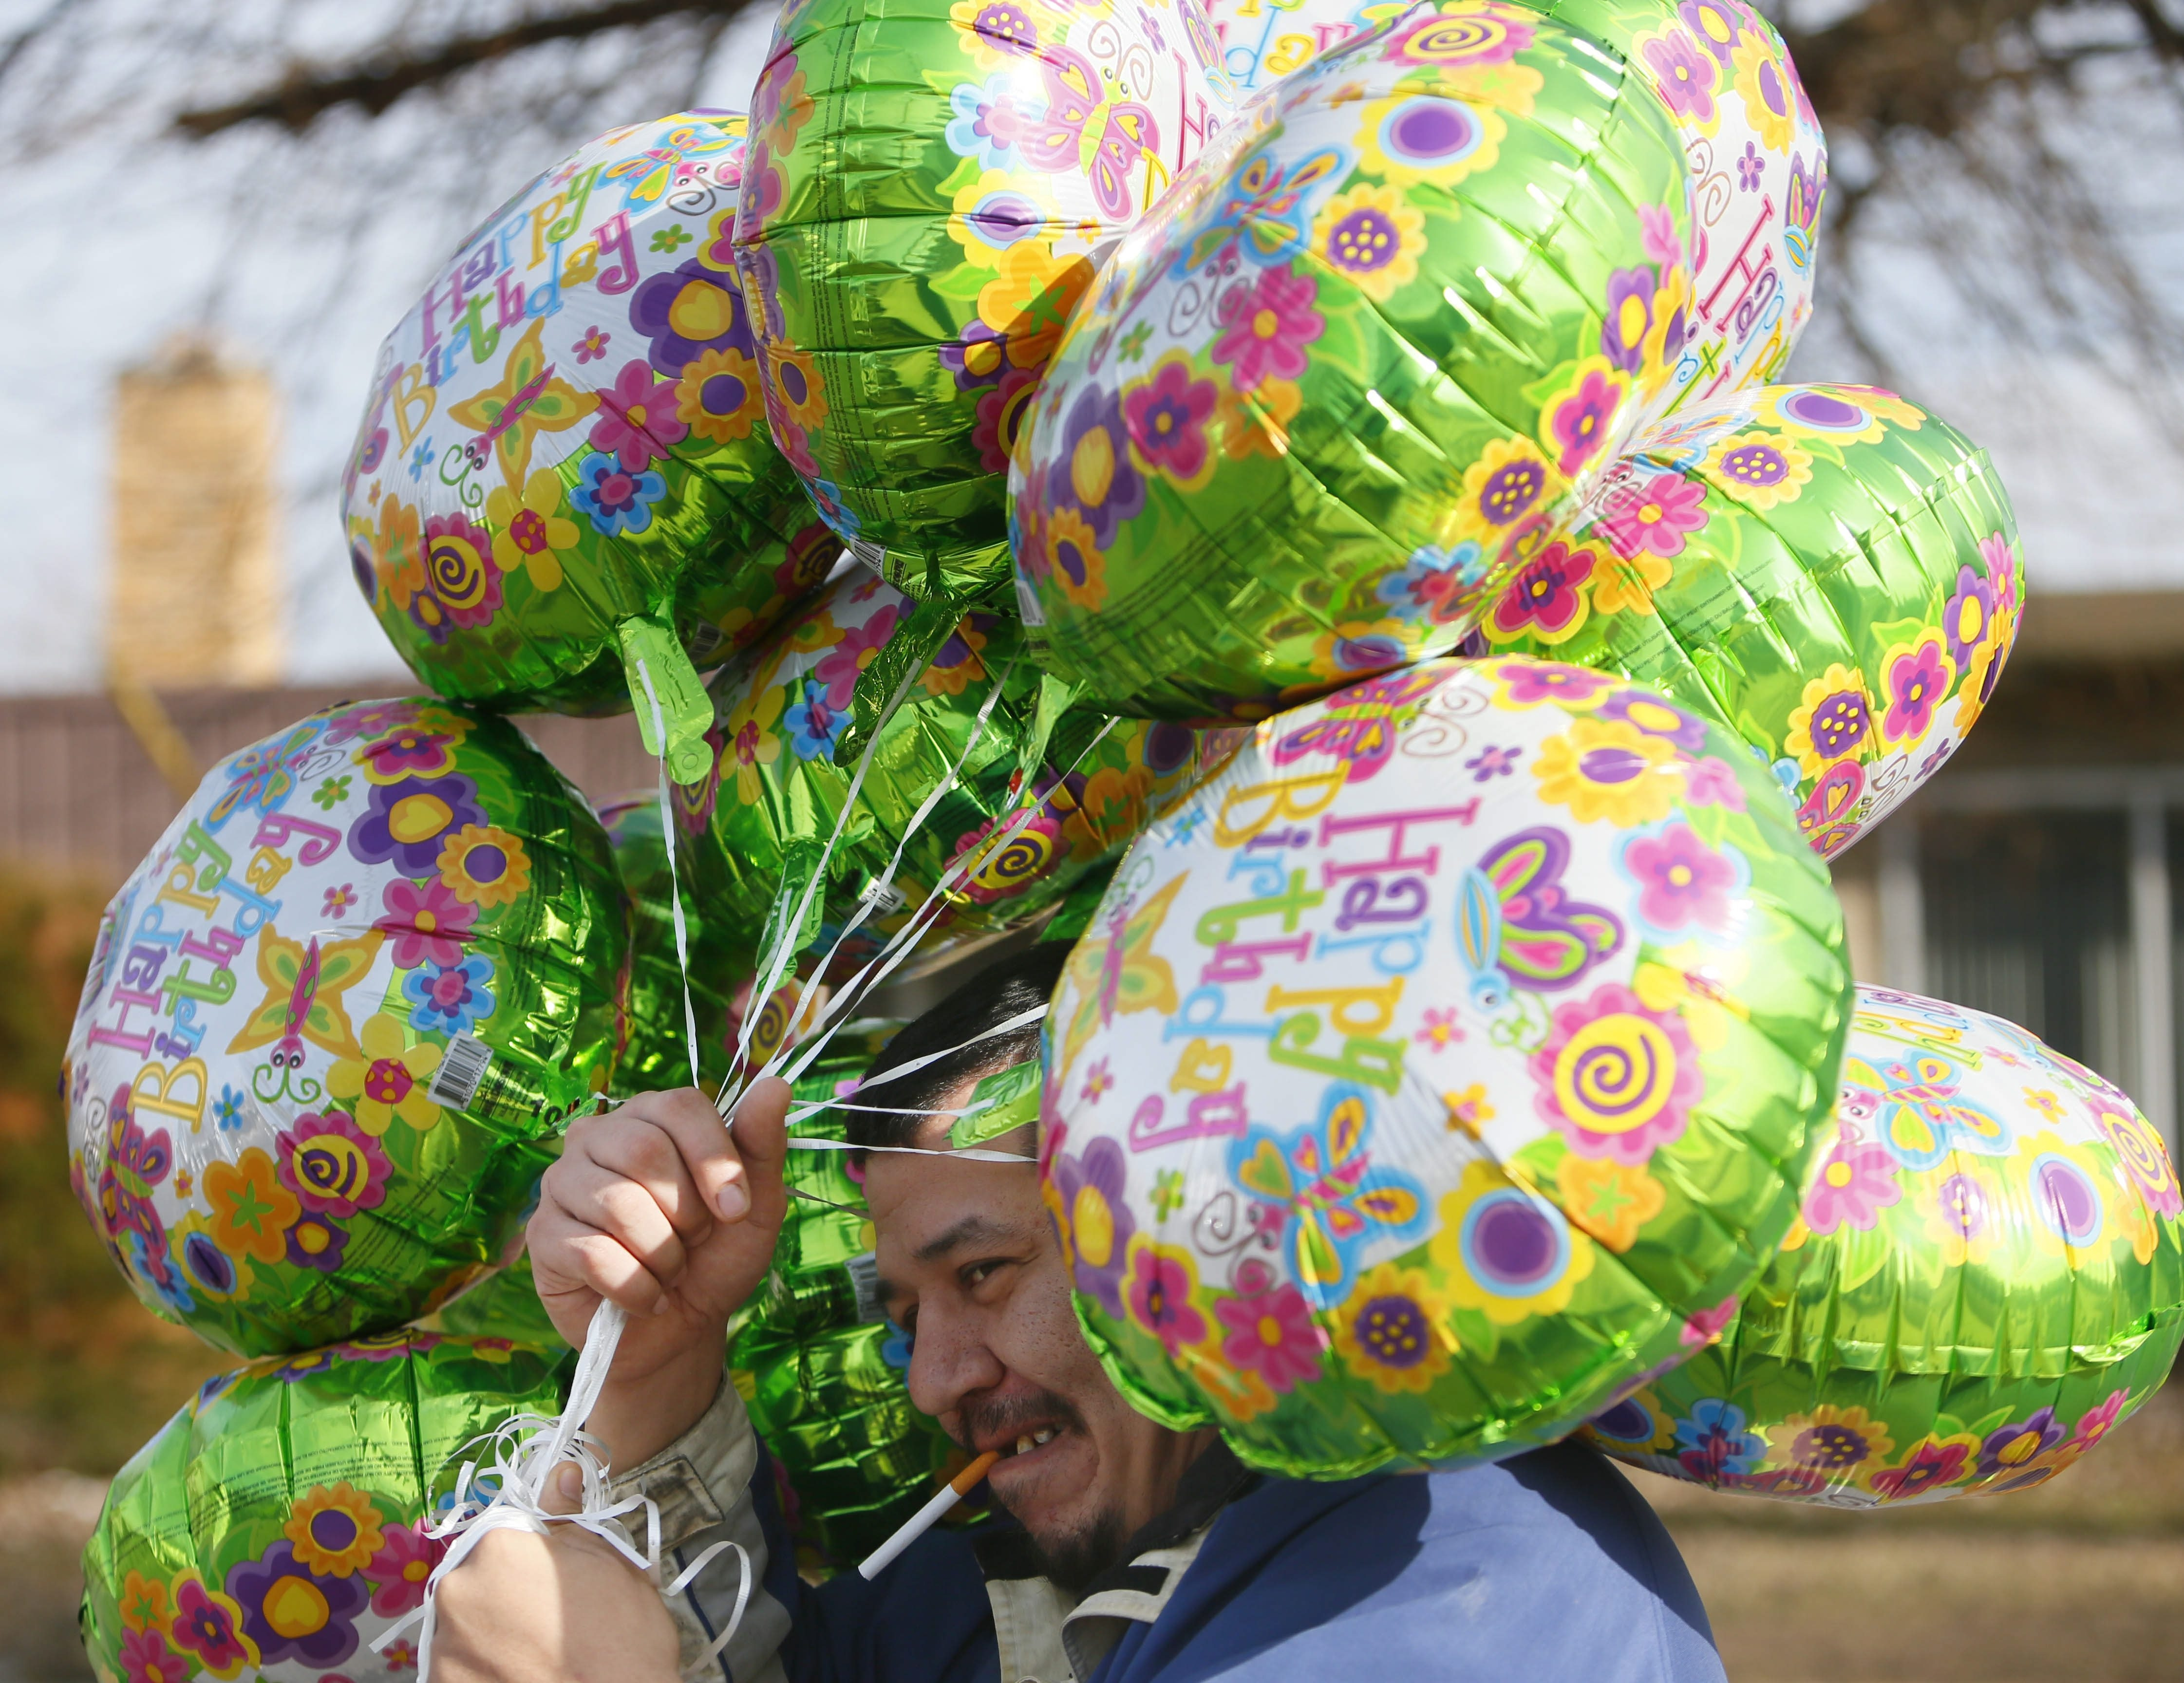 Randall Reuben carries a bunch of balloons he bought for his daughter Maleeah's first birthday as he walks down Great Arrow Drive, Wednesday morning, March 27, 2013.  (Derek Gee/Buffalo News)